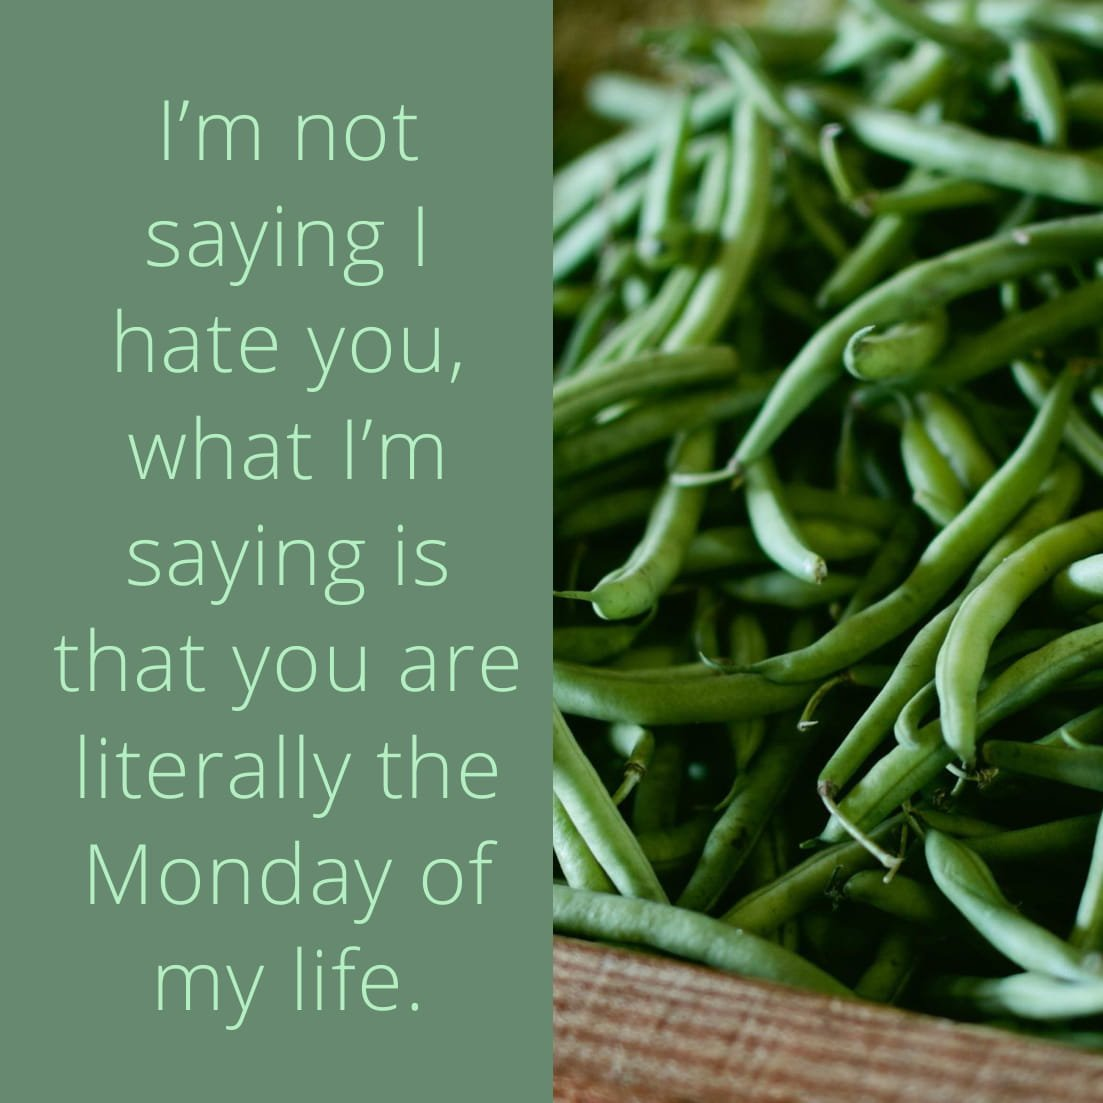 I'm not saying I hate you, what I'm saying is that you are literally the Monday of my life.